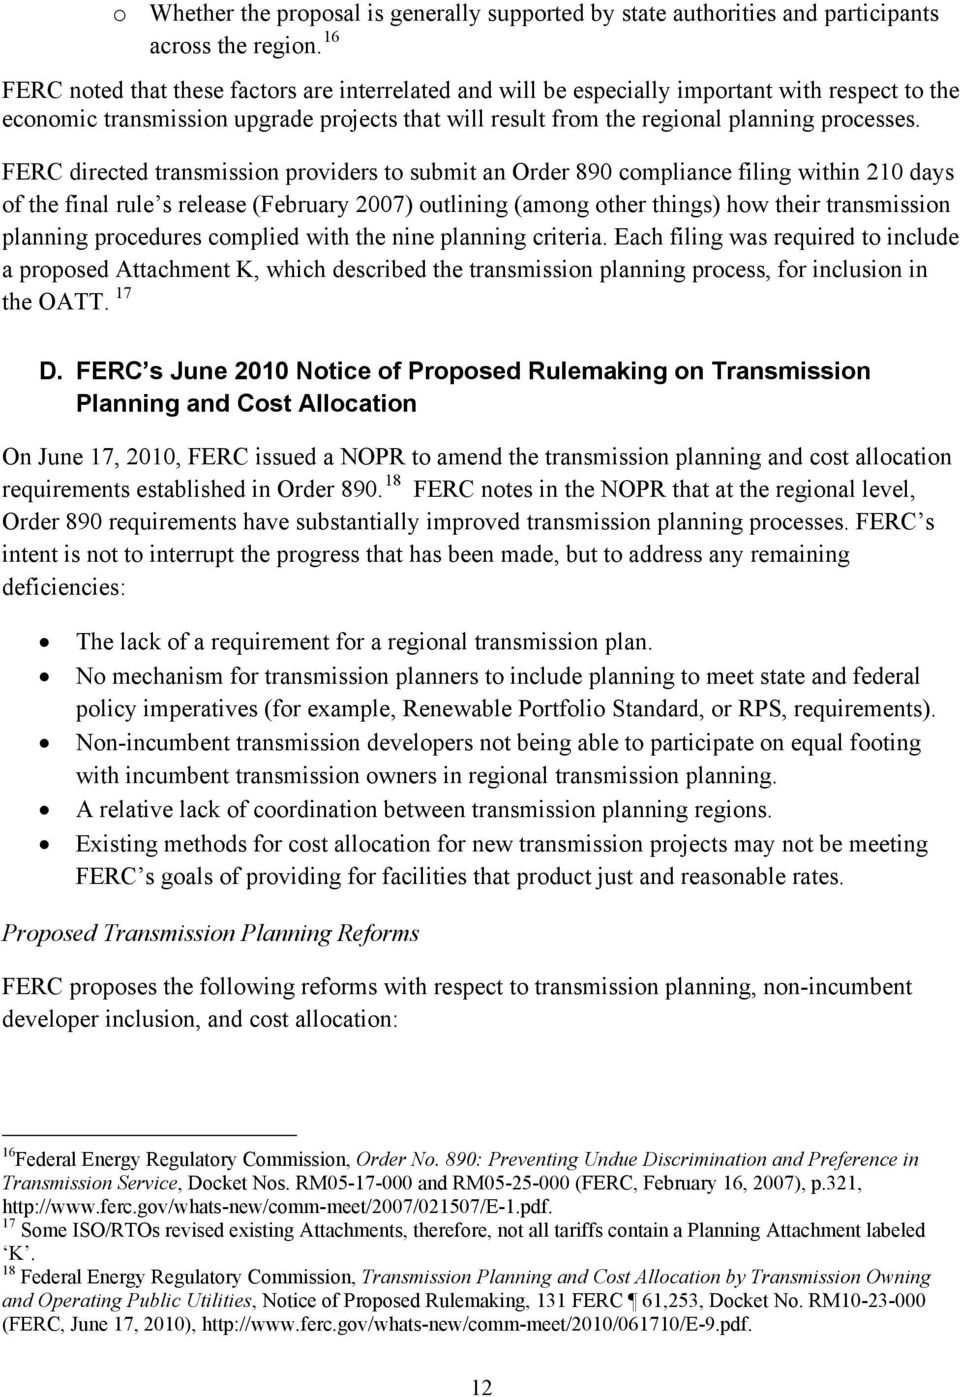 FERC directed transmission providers to submit an Order 890 compliance filing within 210 days of the final rule s release (February 2007) outlining (among other things) how their transmission